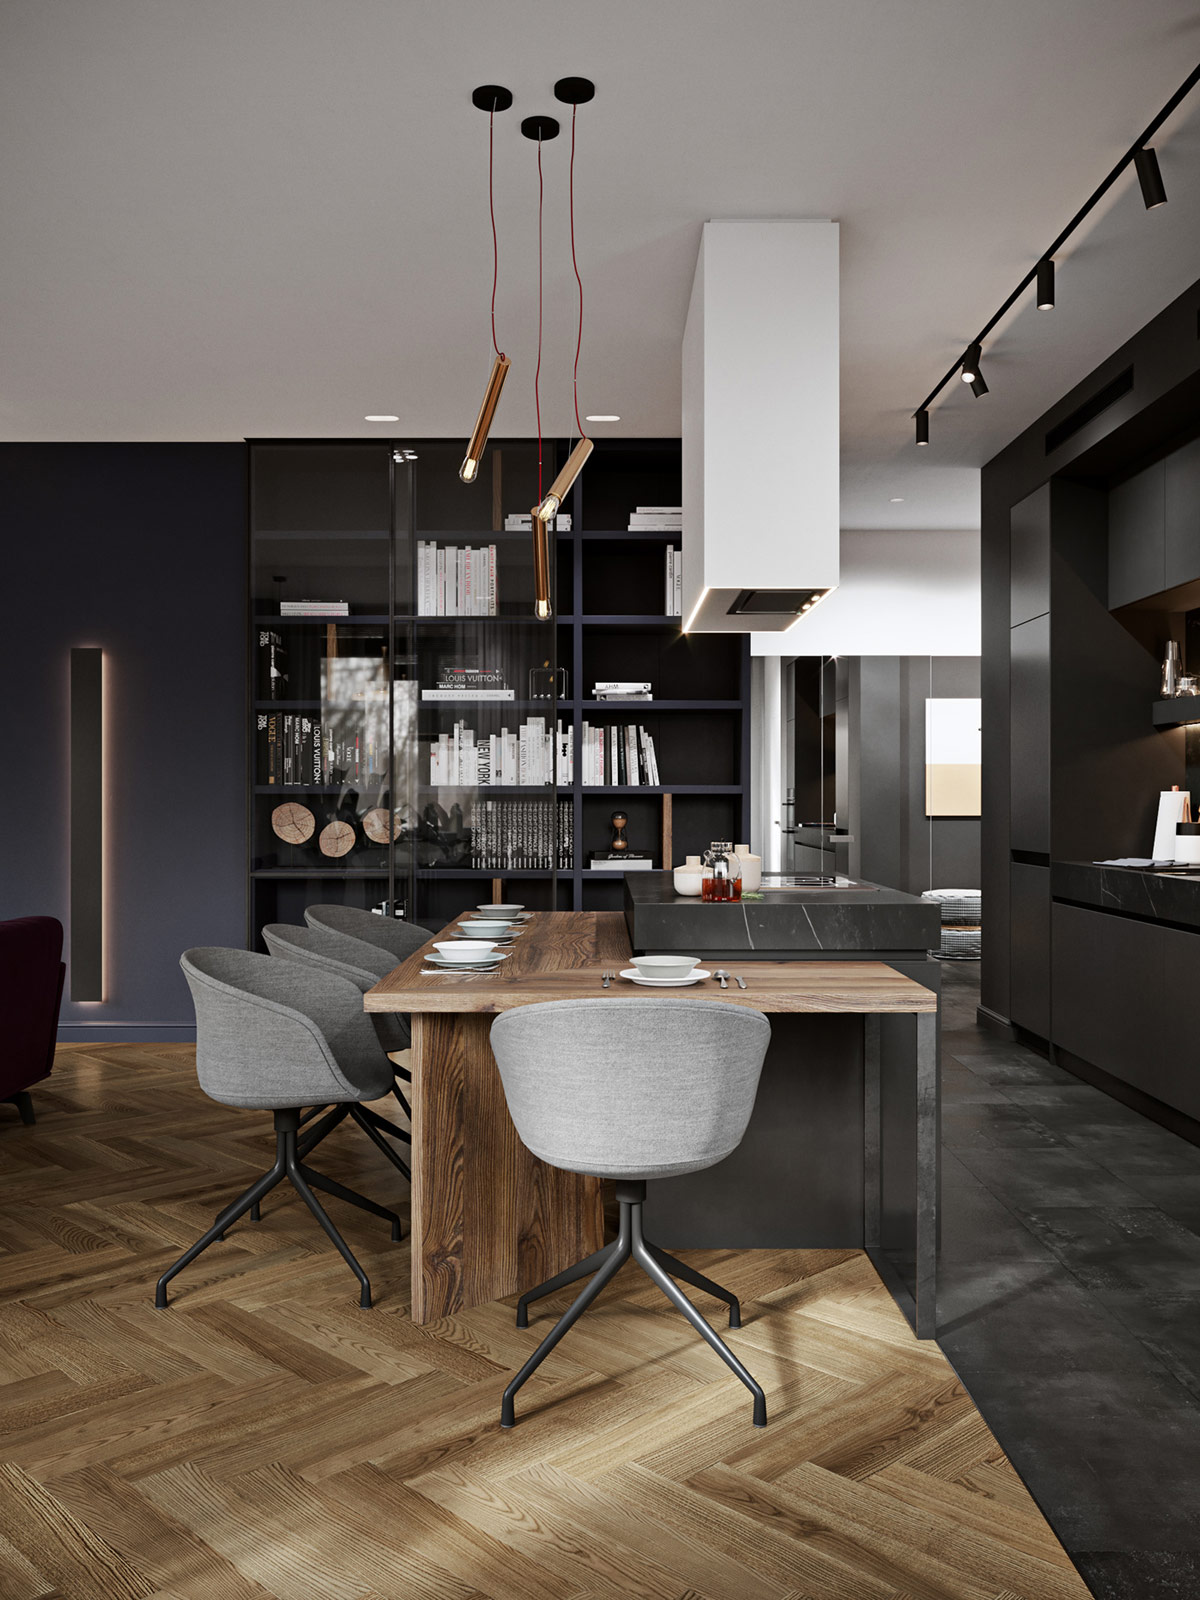 Kitchen Island With Dining Table Attached Interior Design Ideas